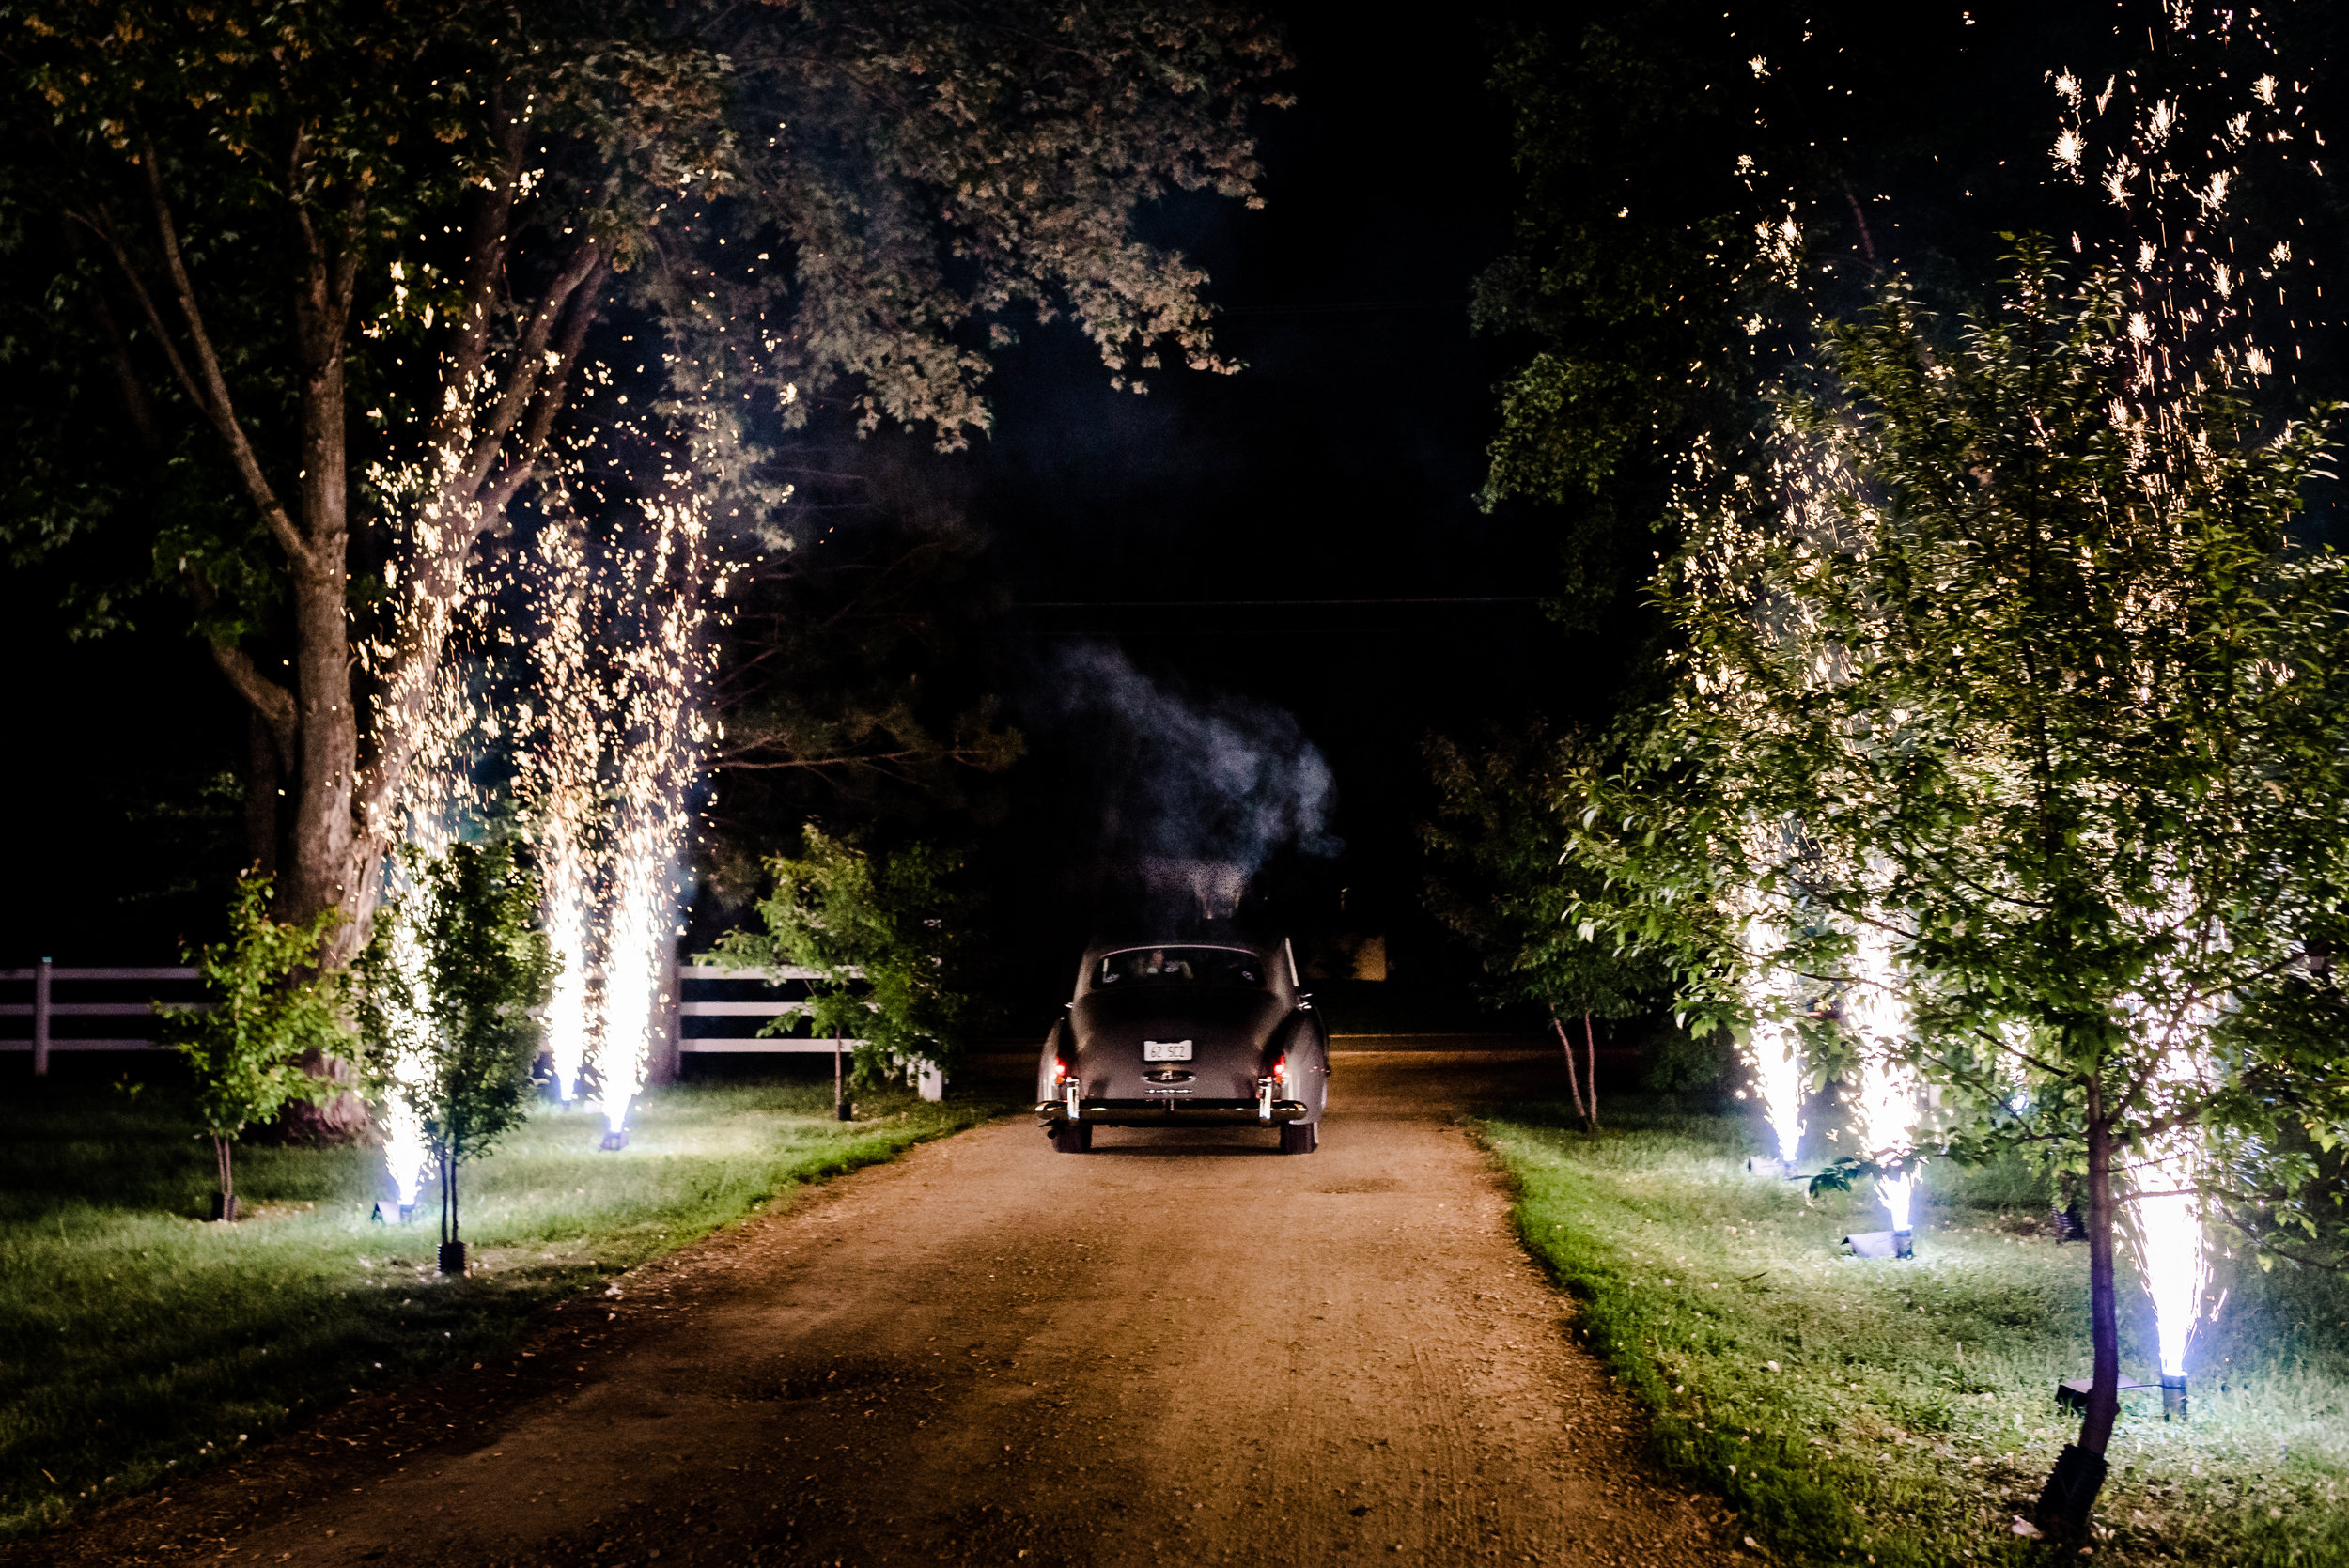 Fireworks Exit at Historic John P Furber Farm Wedding - Cottage Grove, MN Wedding Photography